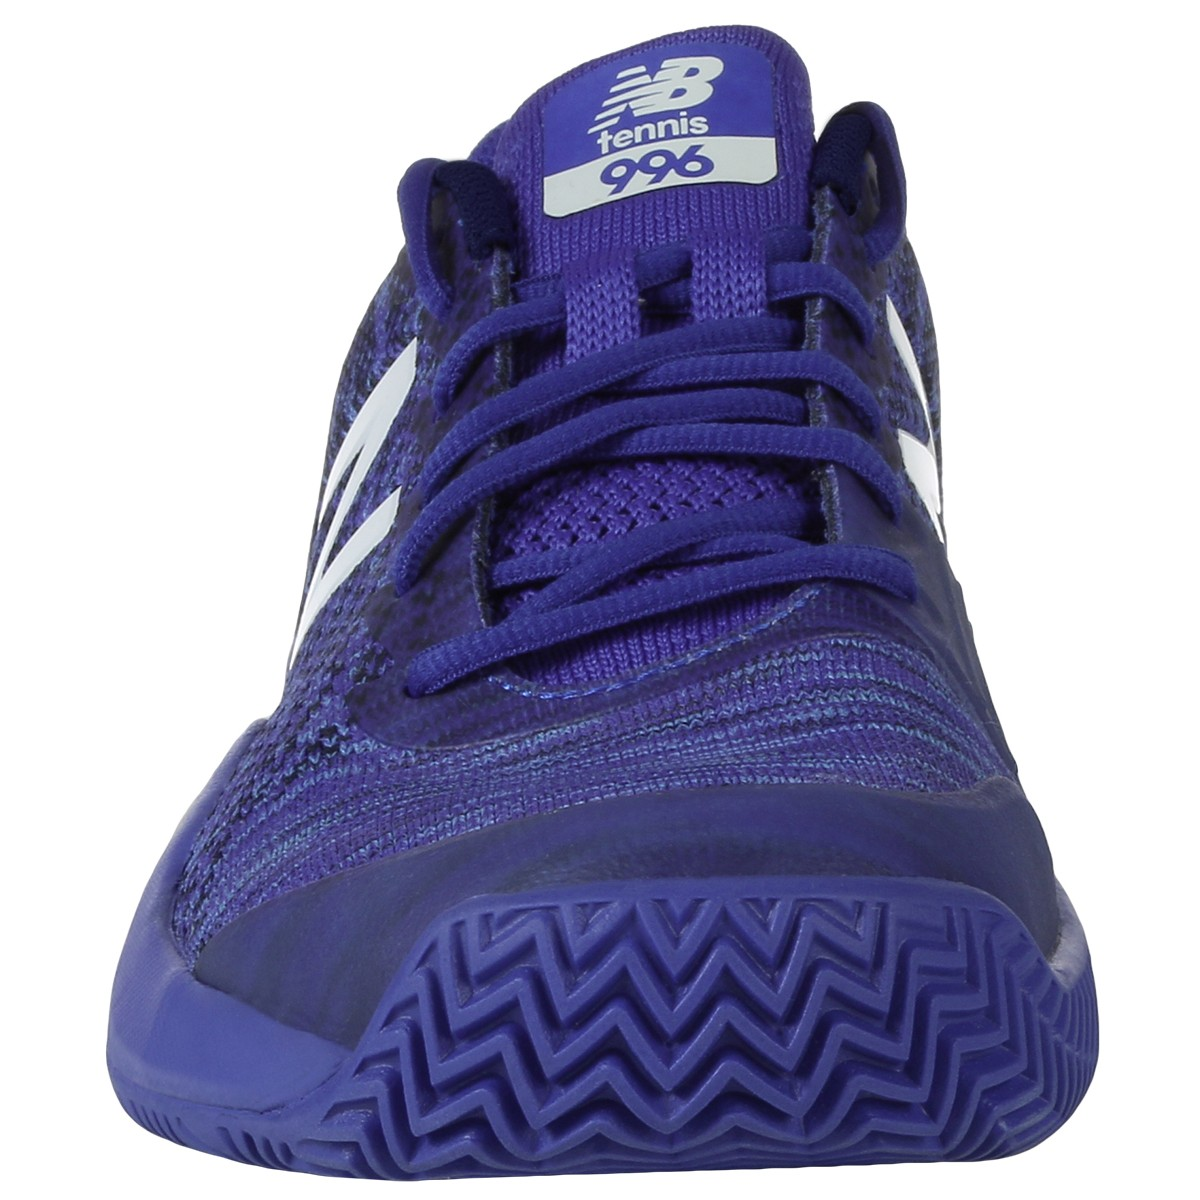 low cost edf75 01b65 NEW BALANCE 996 V3 CLAY COURT SHOES - NEW BALANCE - Men's ...